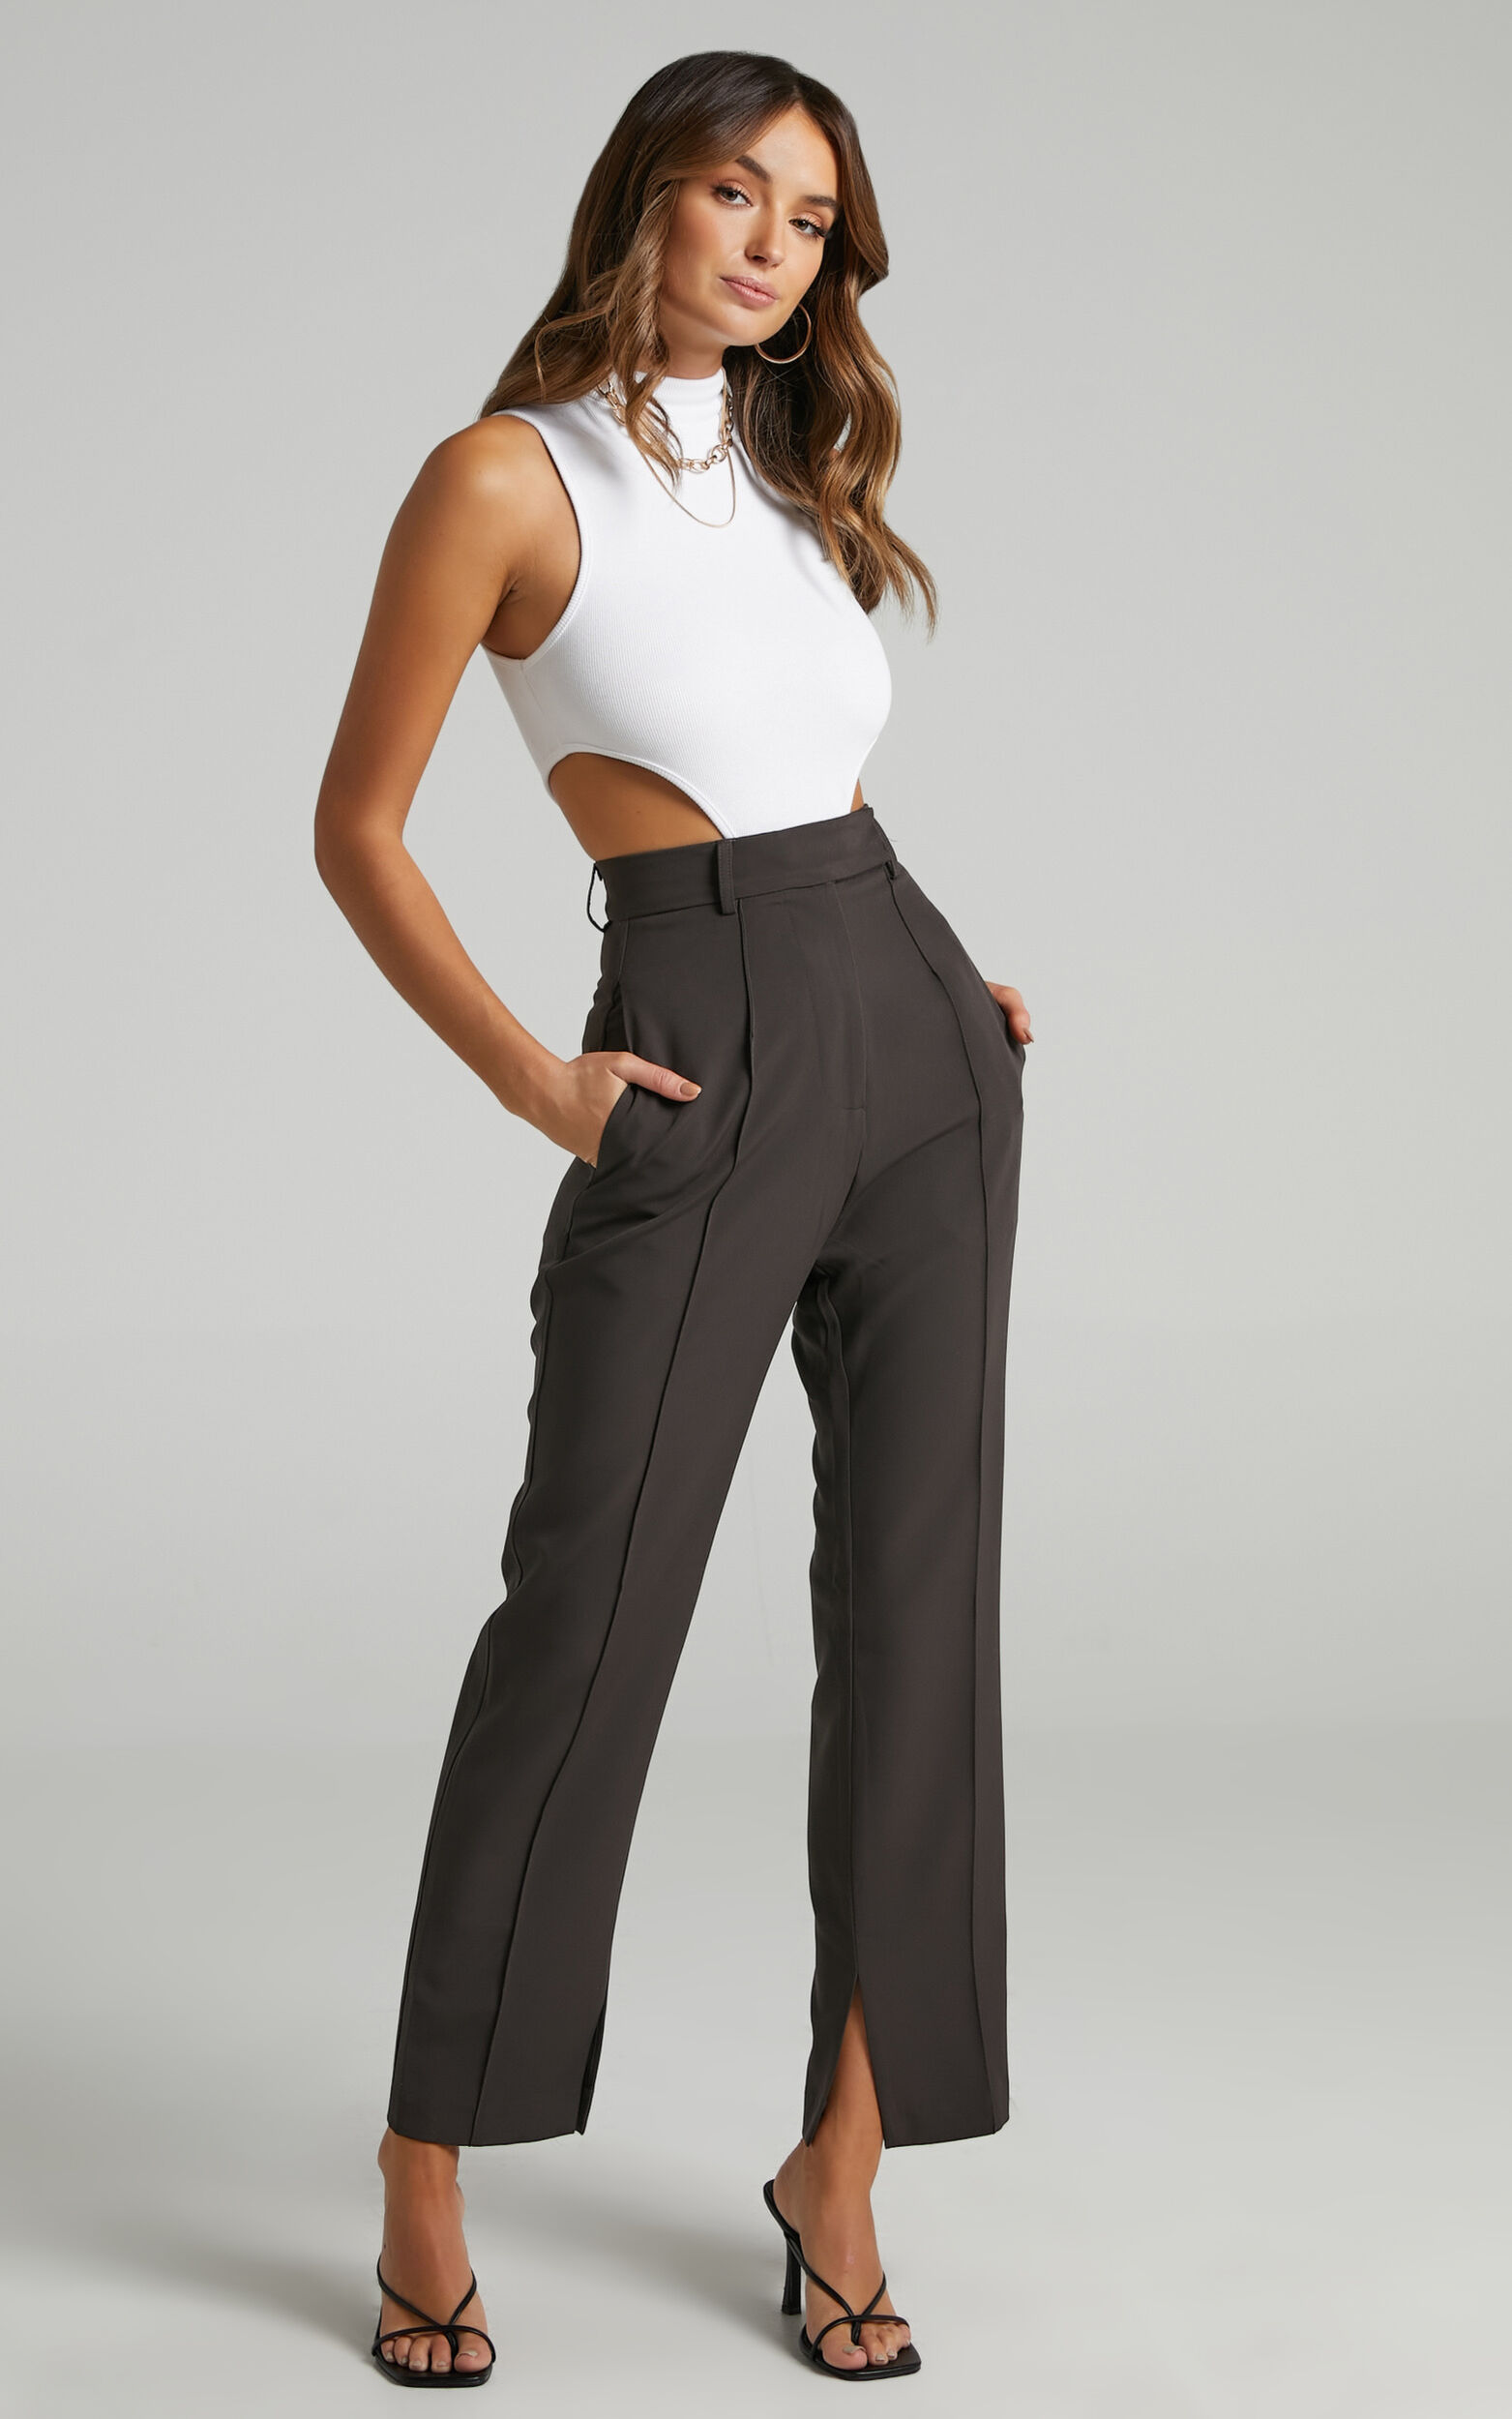 Rogers Pants in Charcoal - 06, GRY1, super-hi-res image number null